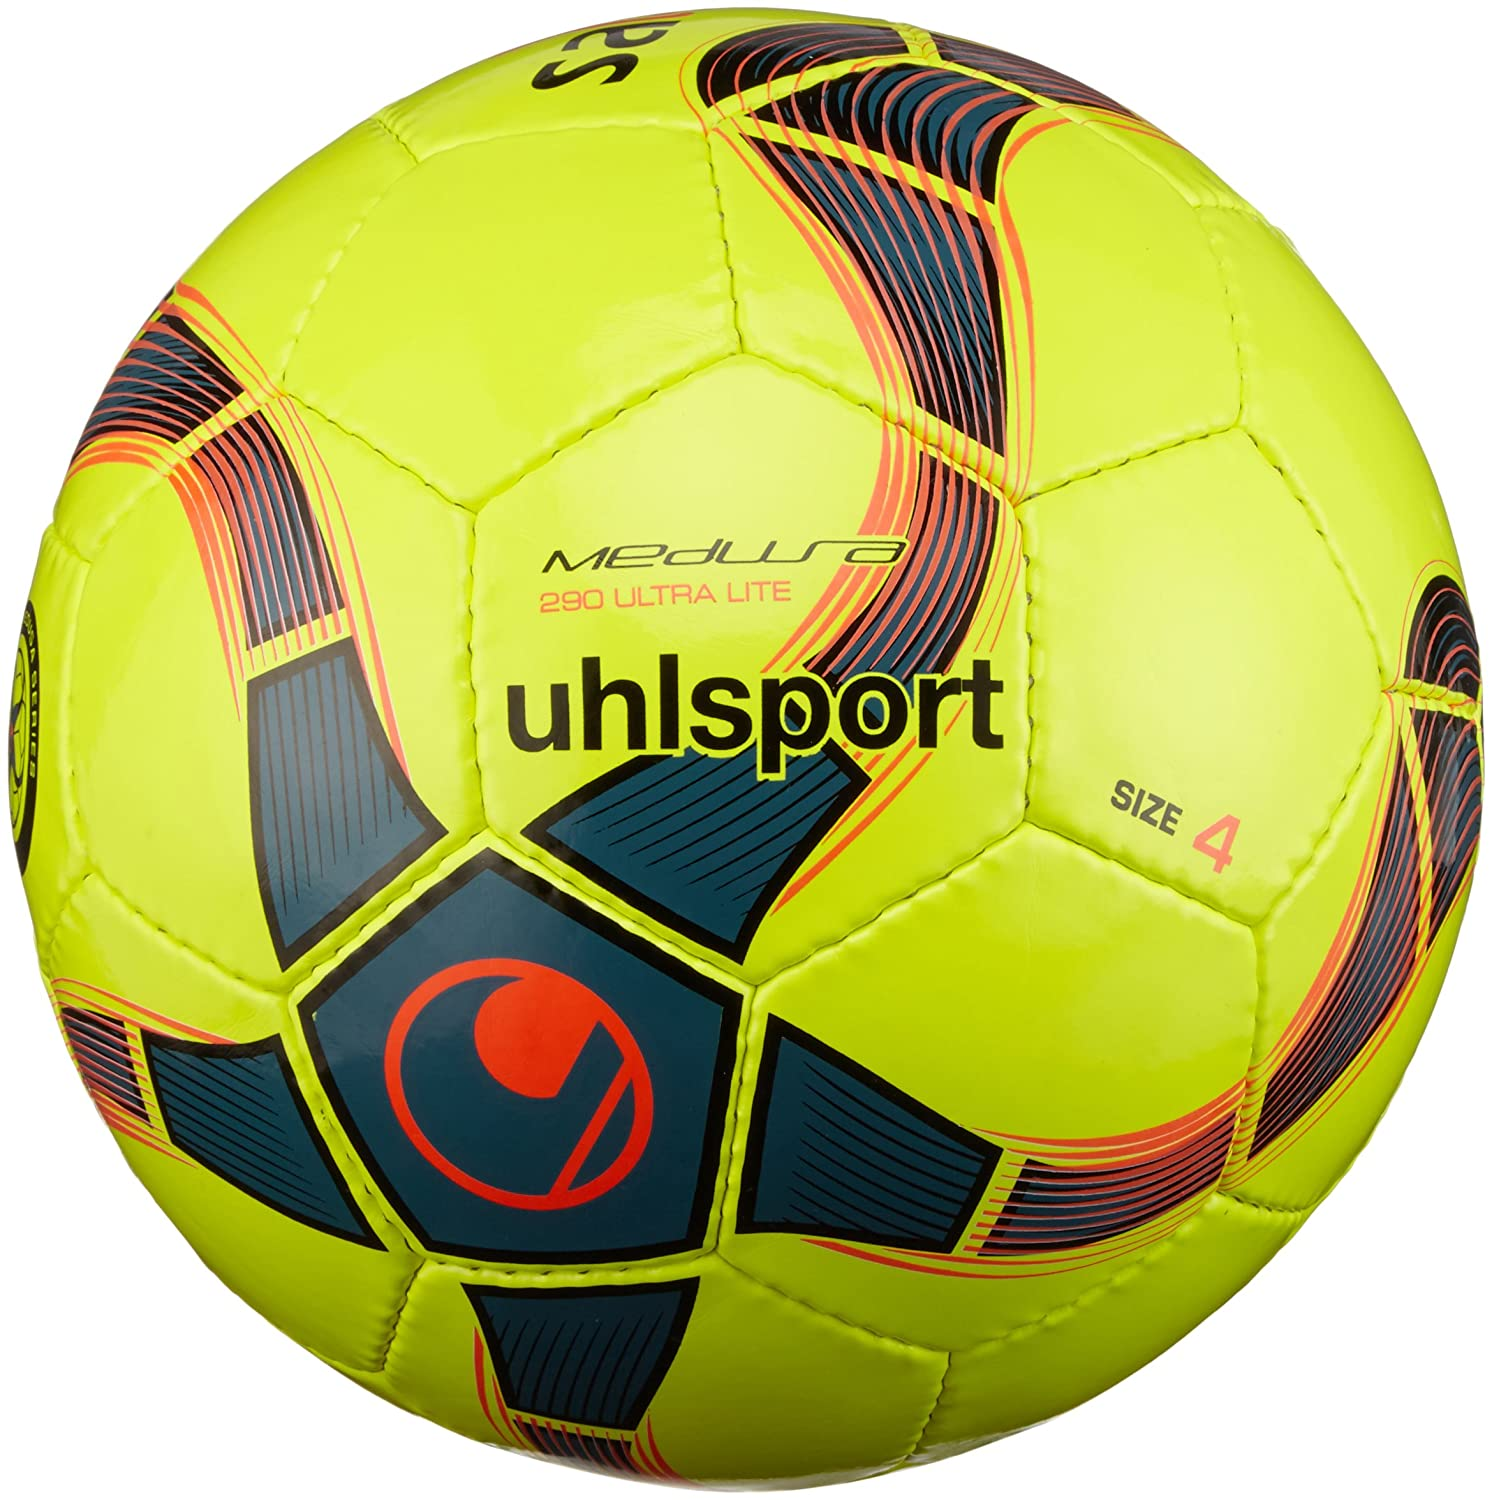 uhlsport Medusa Anteo 290 Ultra Lite Ballon de Foot Mixte